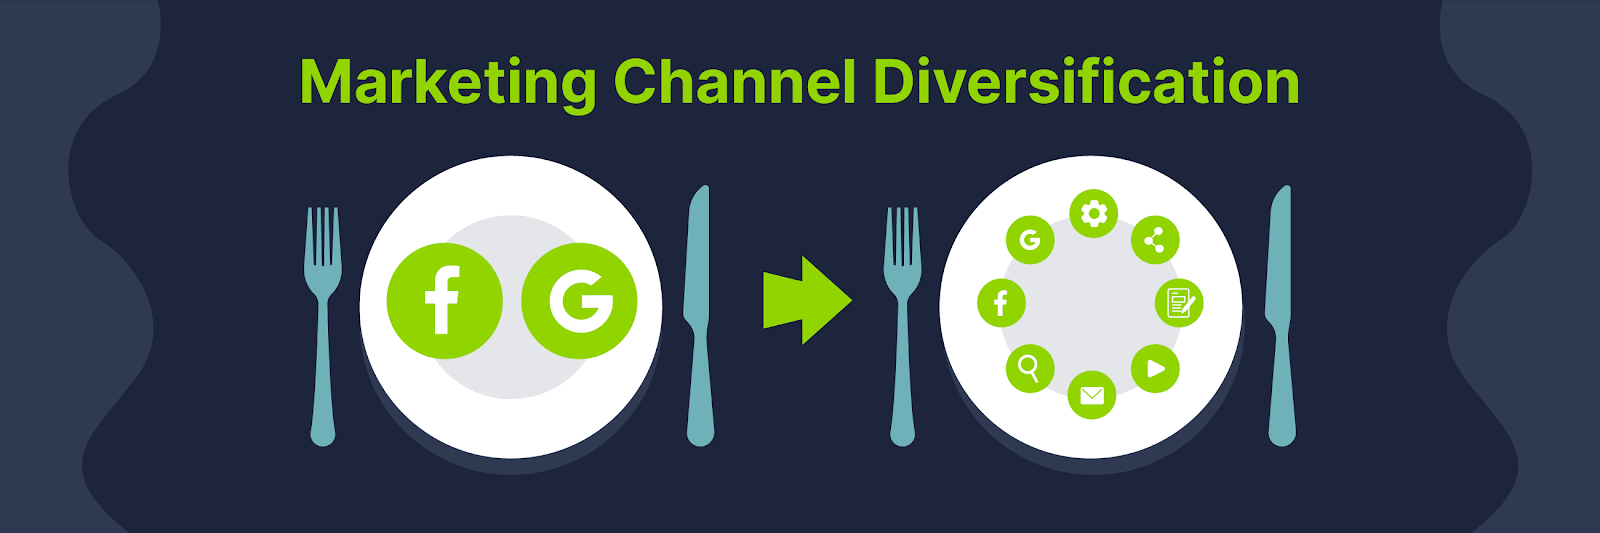 Marketing channel diversification: plate on the left with only facebook and google, and plate on the right with facebook, google, email, youtube, and more